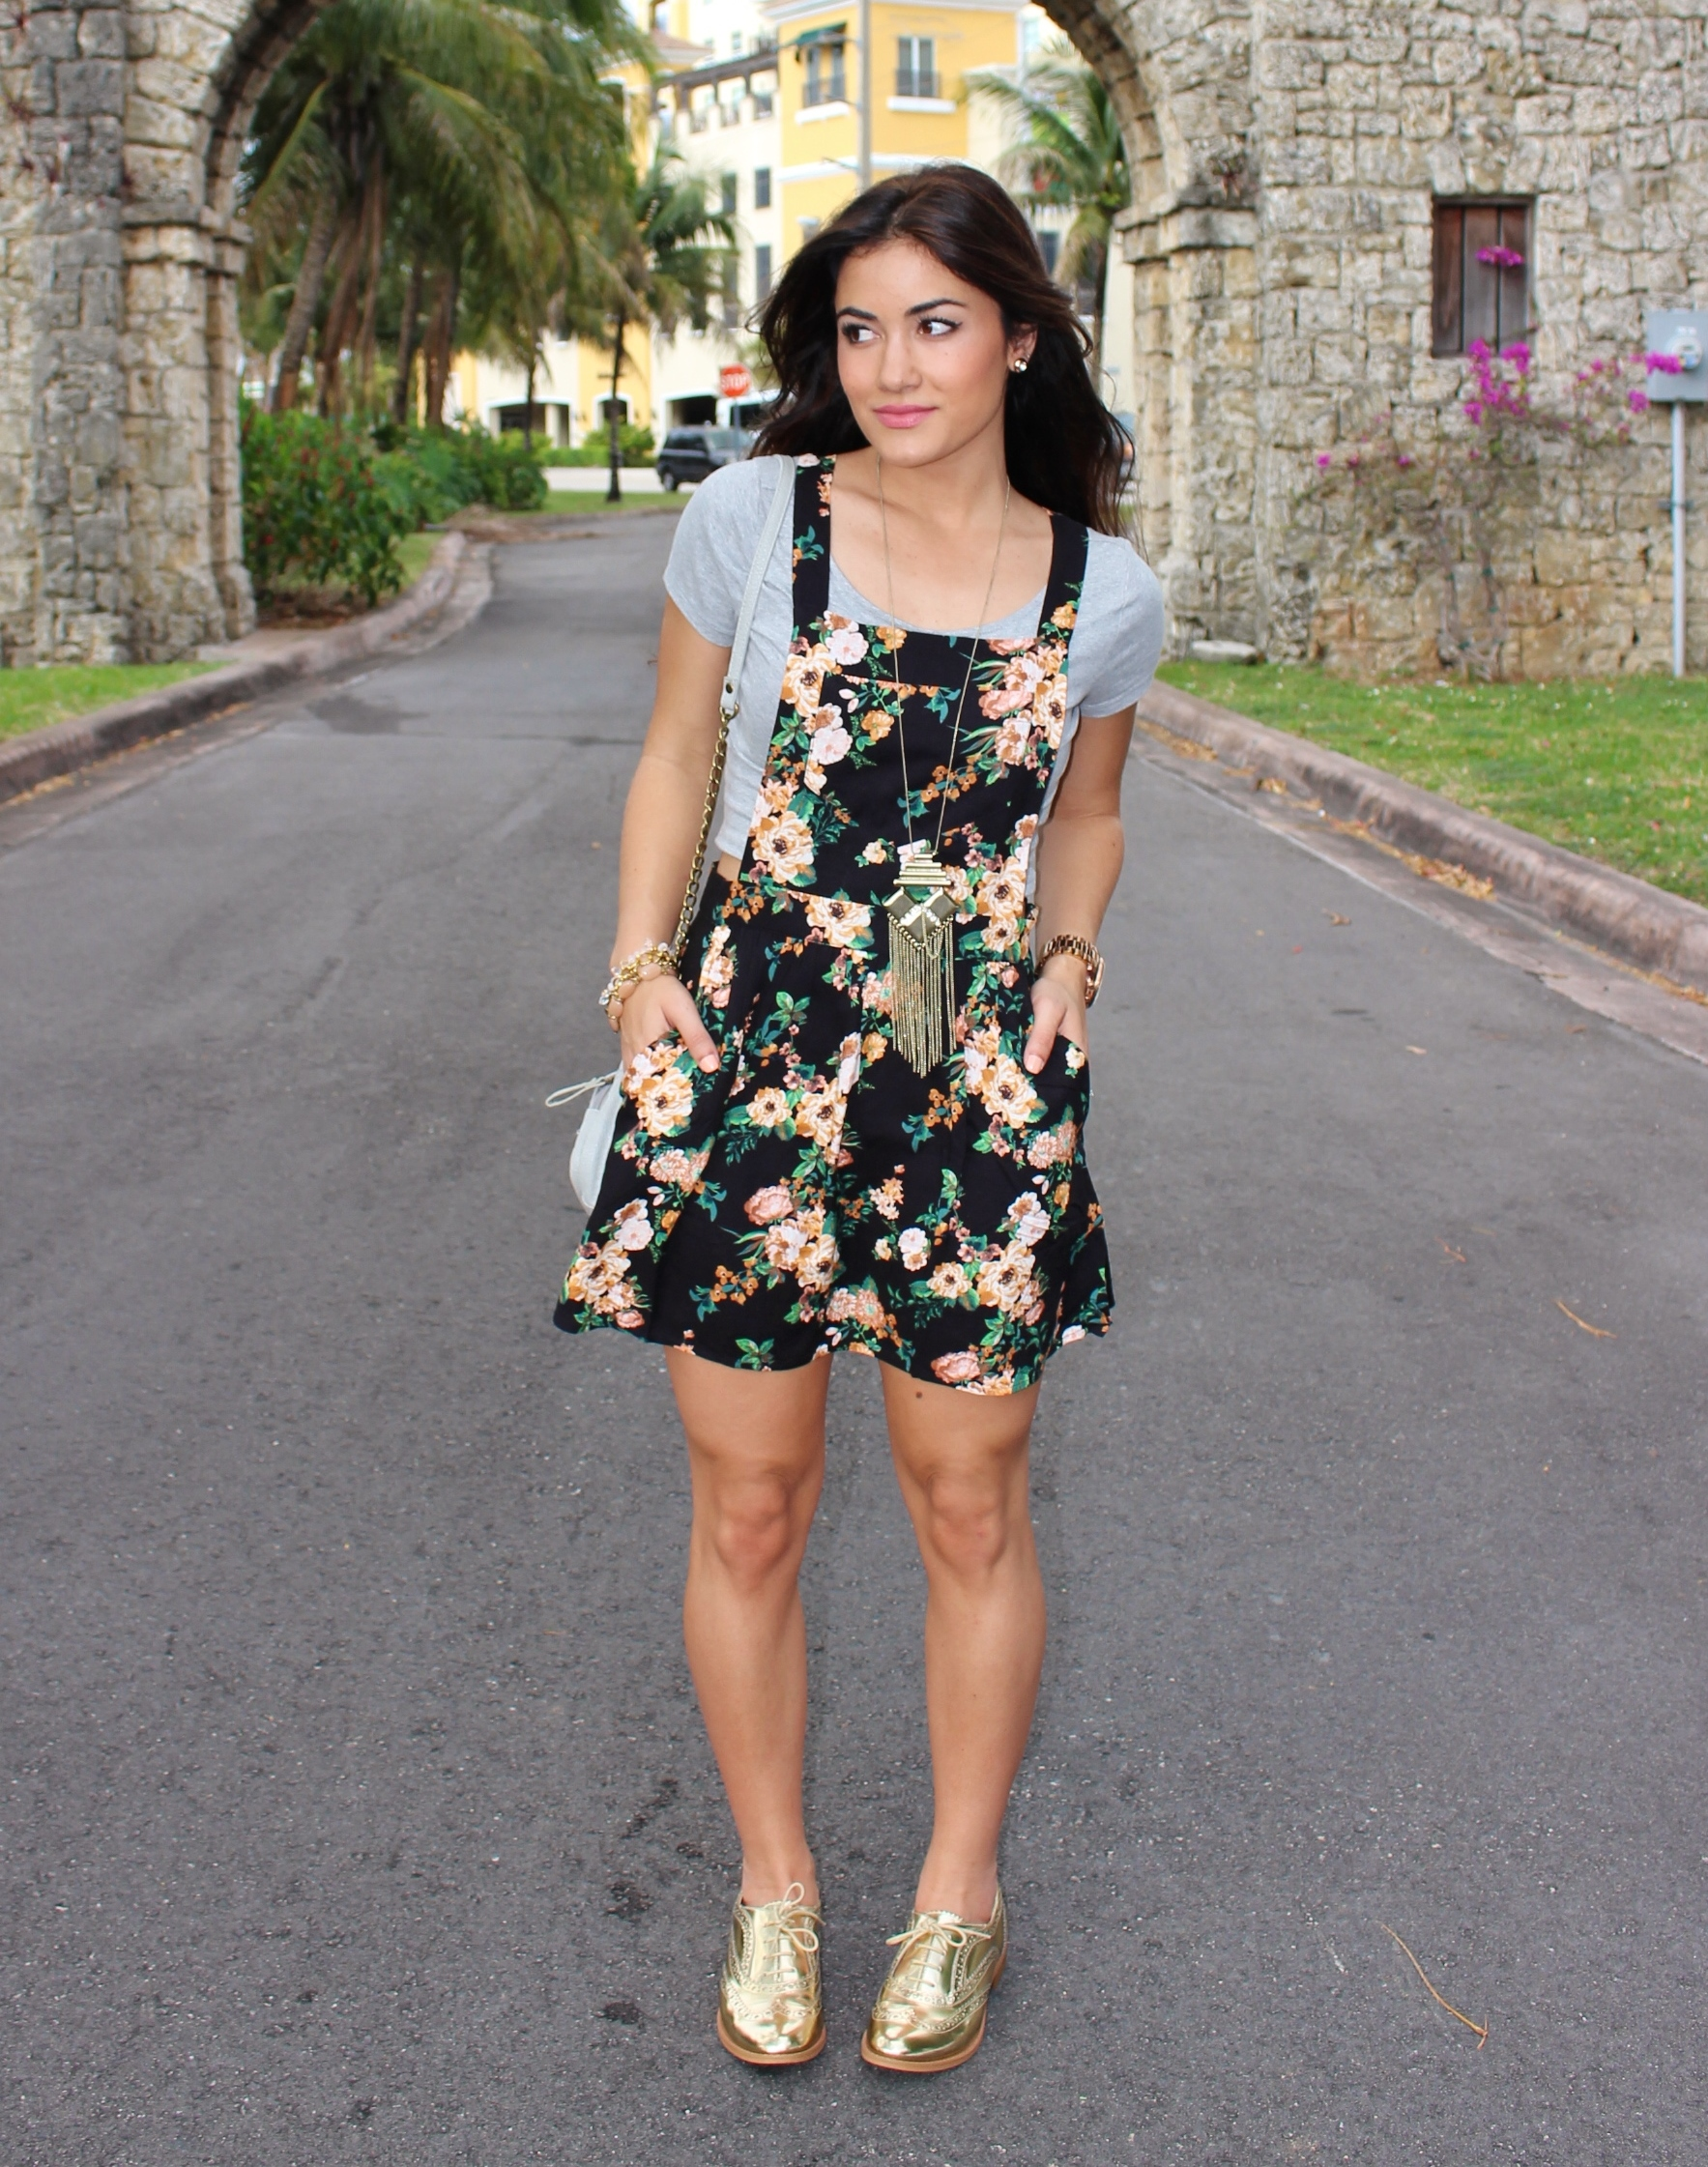 Denim Overall Dress Outfit images